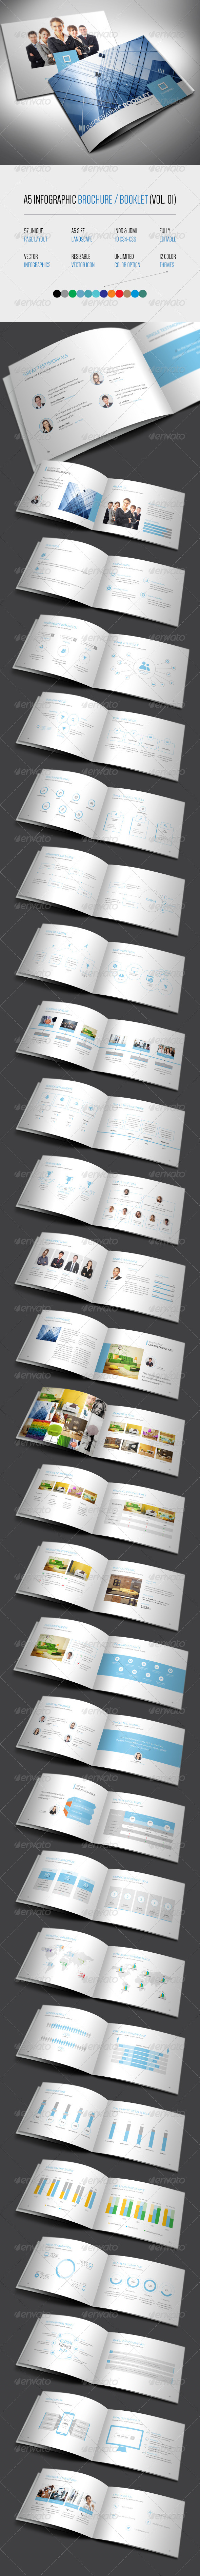 GraphicRiver Infographic Brochure Booklet Vol 01 7939329